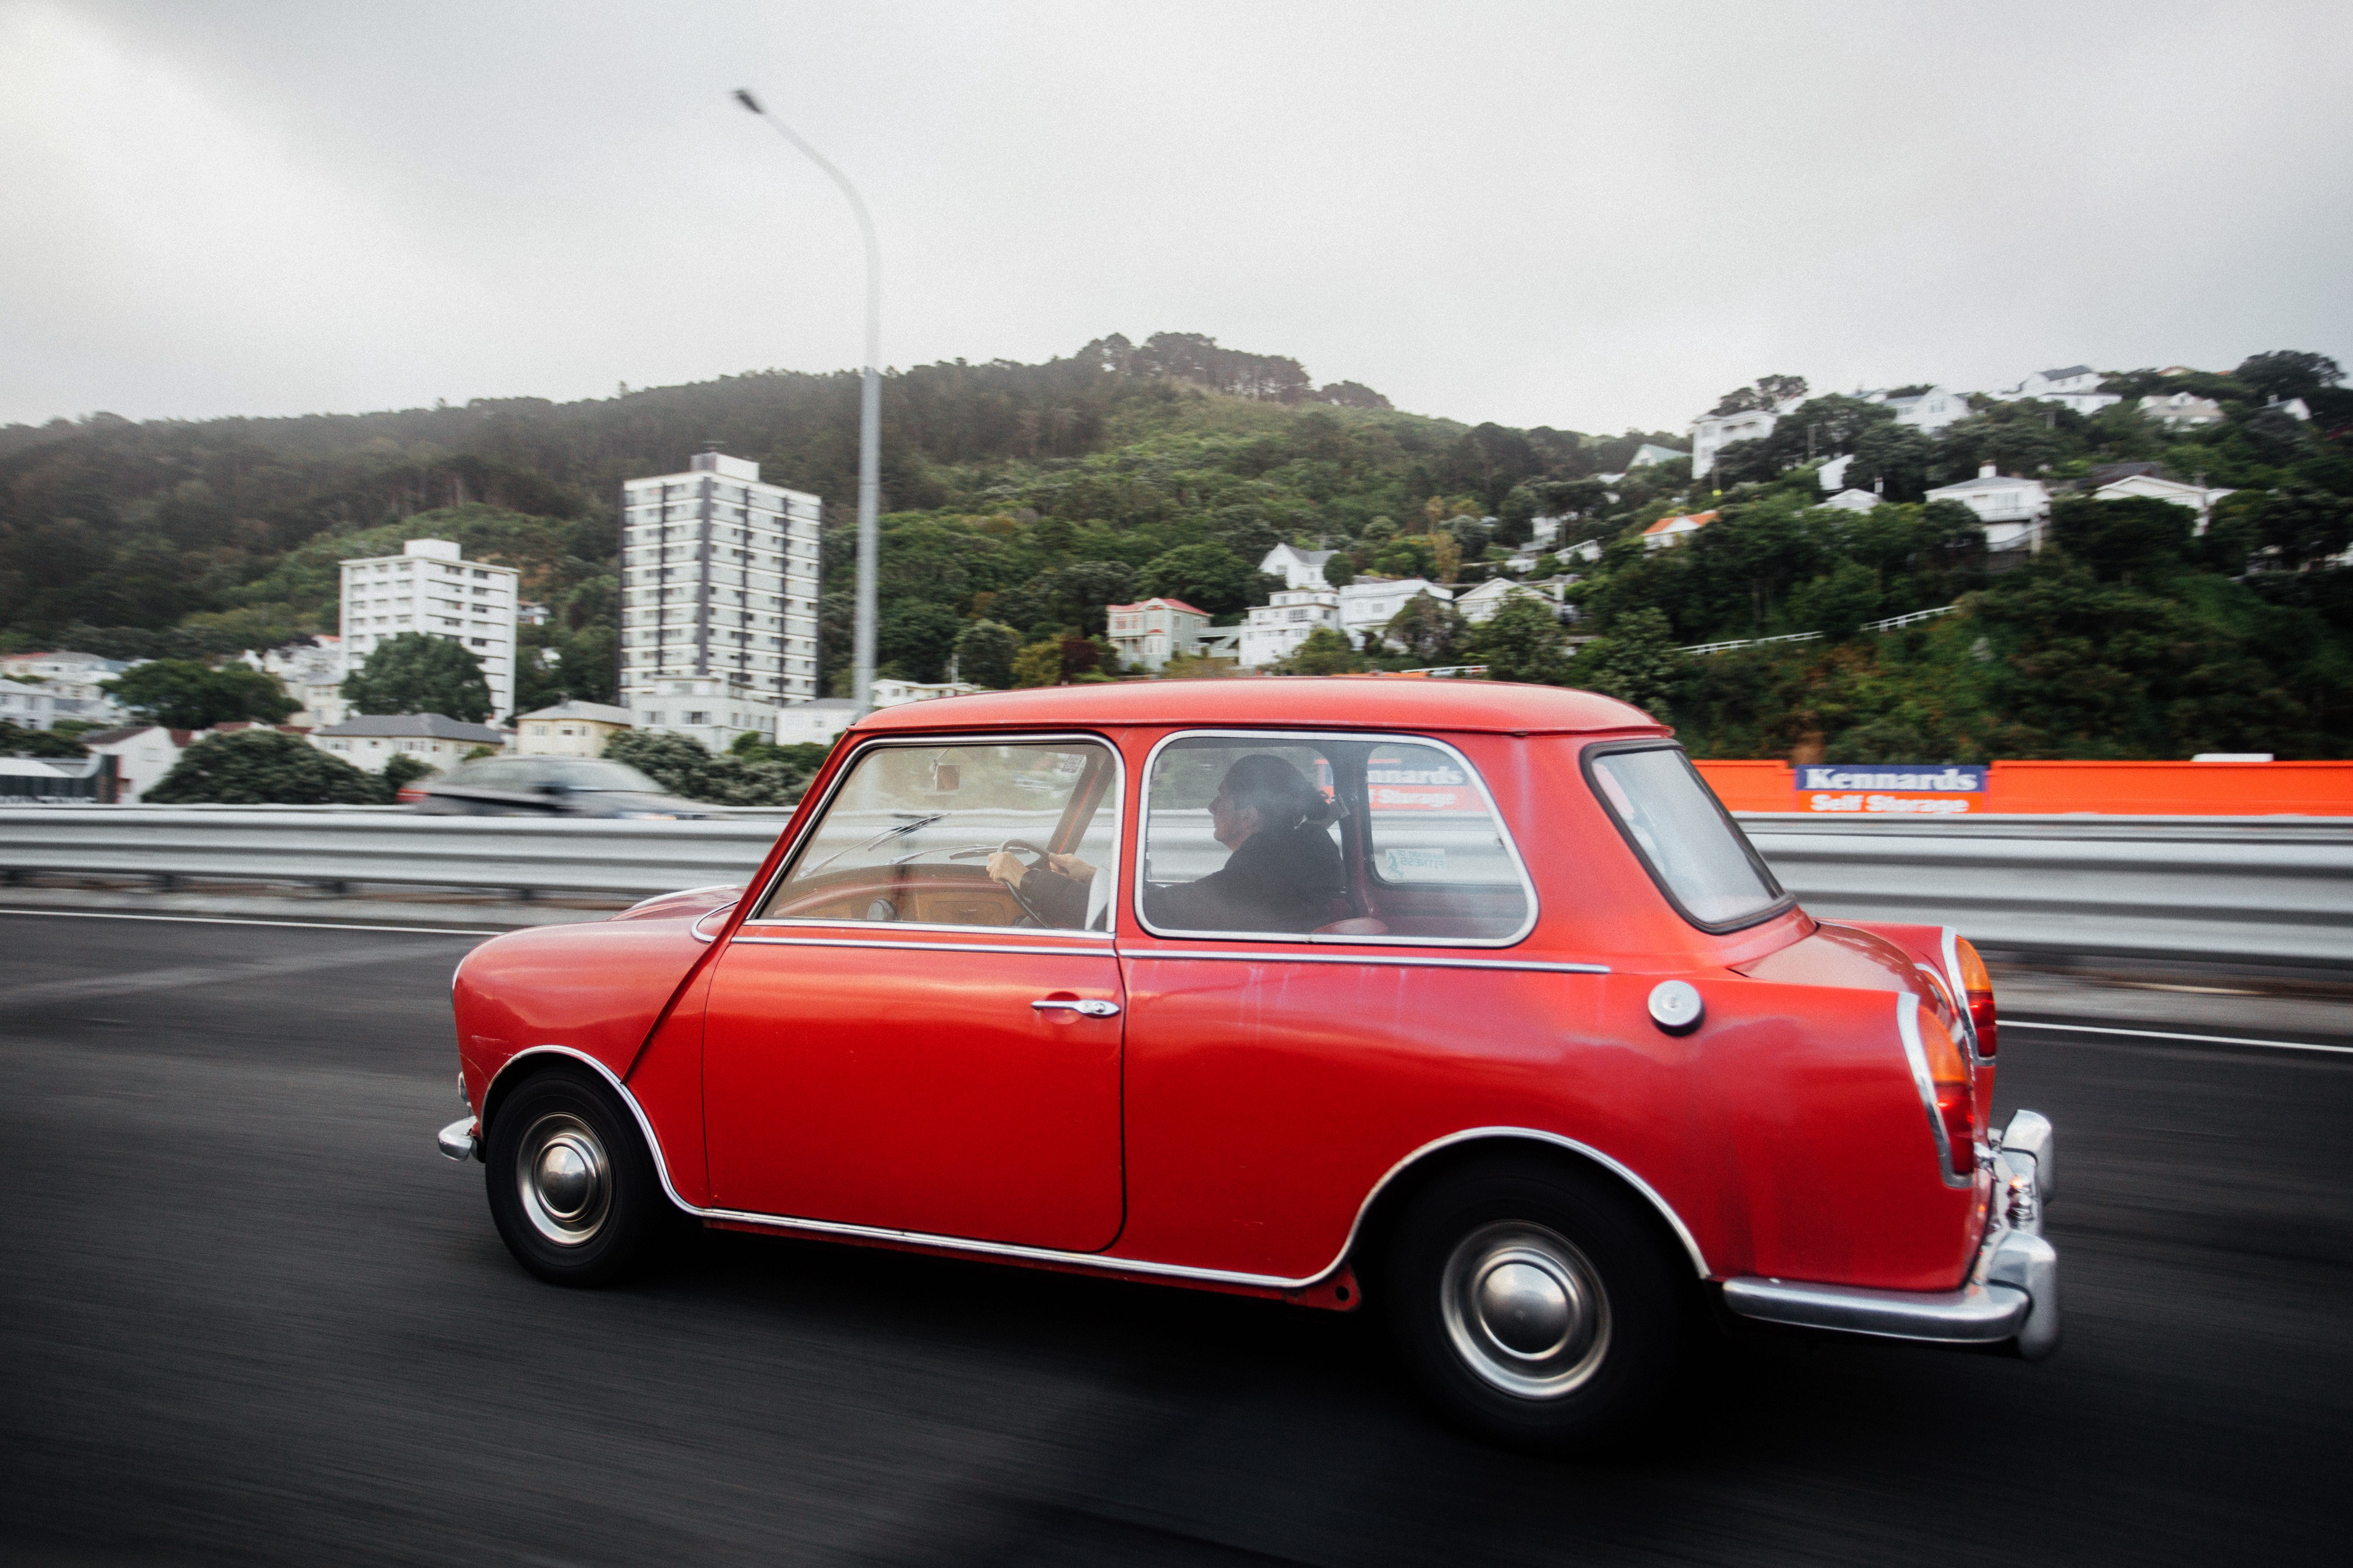 small red car being on a highway